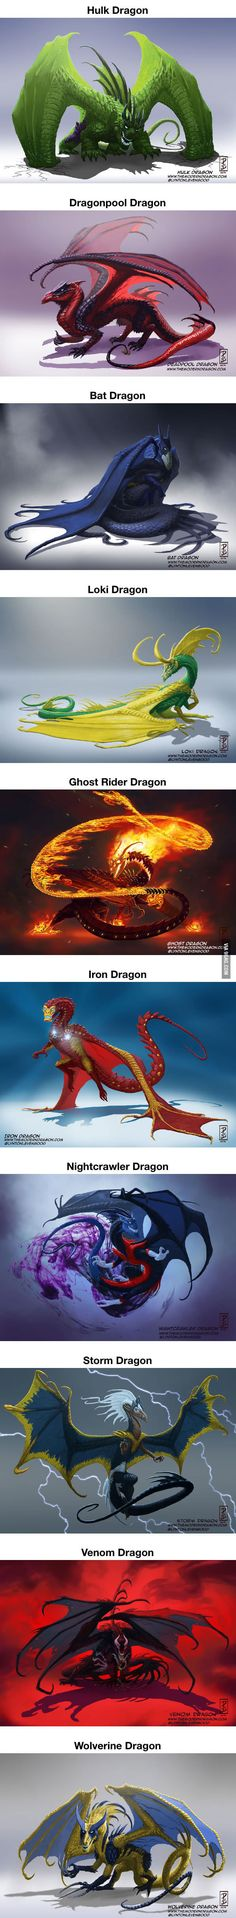 Super heroes if they were a dragon